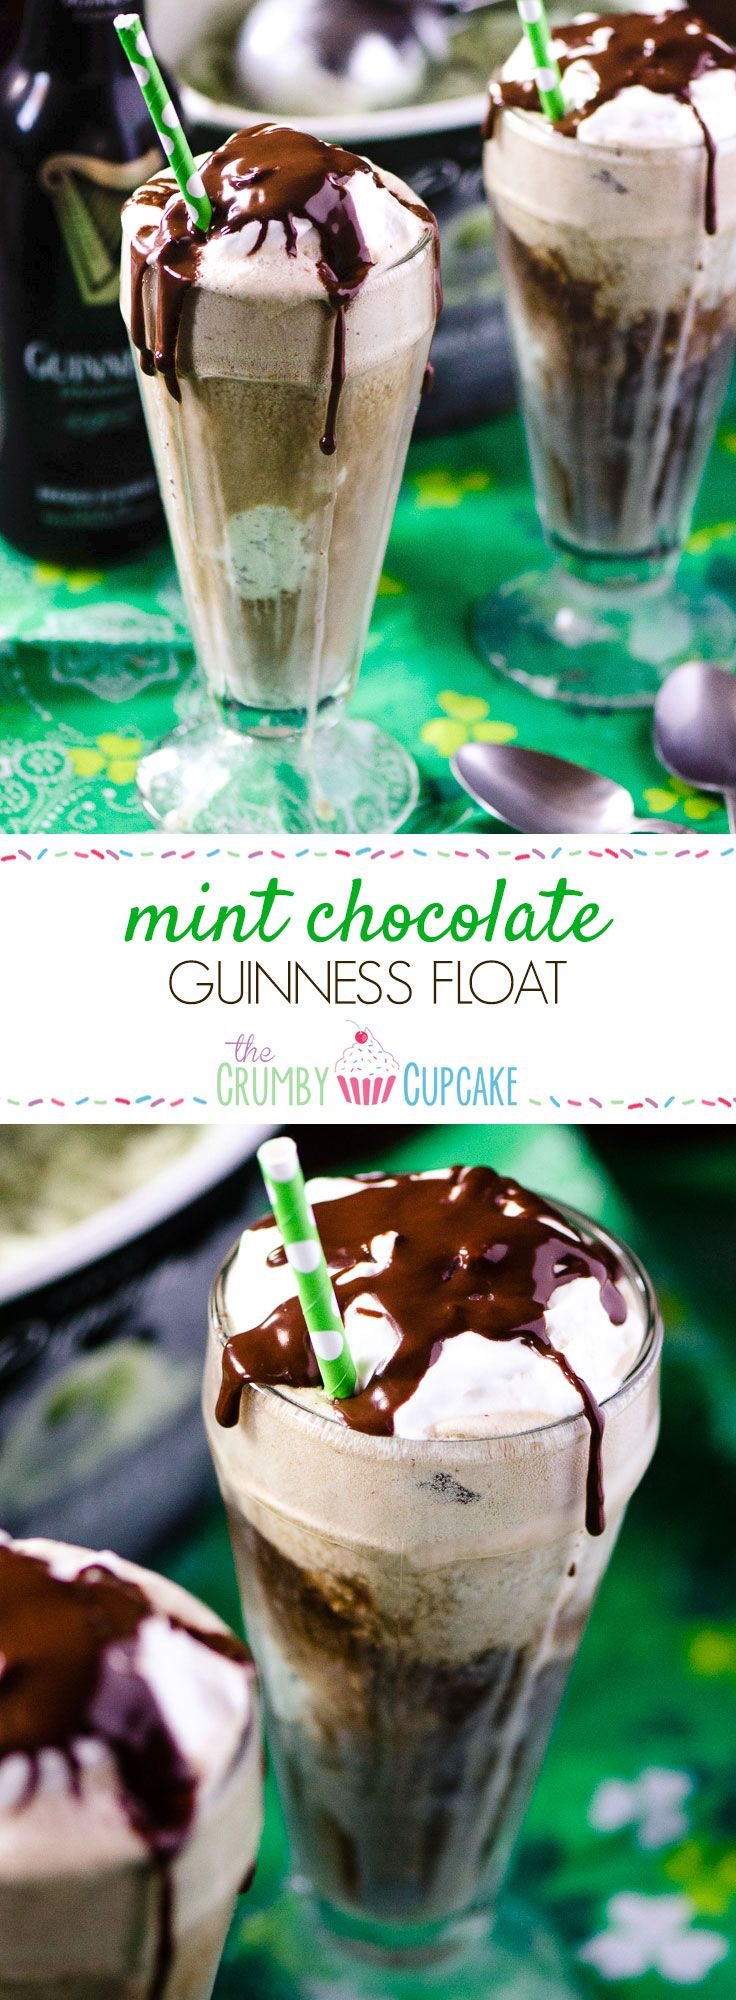 Mint Chocolate Guinness Float | Tired of the same old pint of Guinness? Kick it up Leprechaun style! Add a scoop of mint chocolate chip ice cream, a dollop of Irish cream whipped cream, and a drizzle of chocolate for a fun and festive float. @crumbycupcake